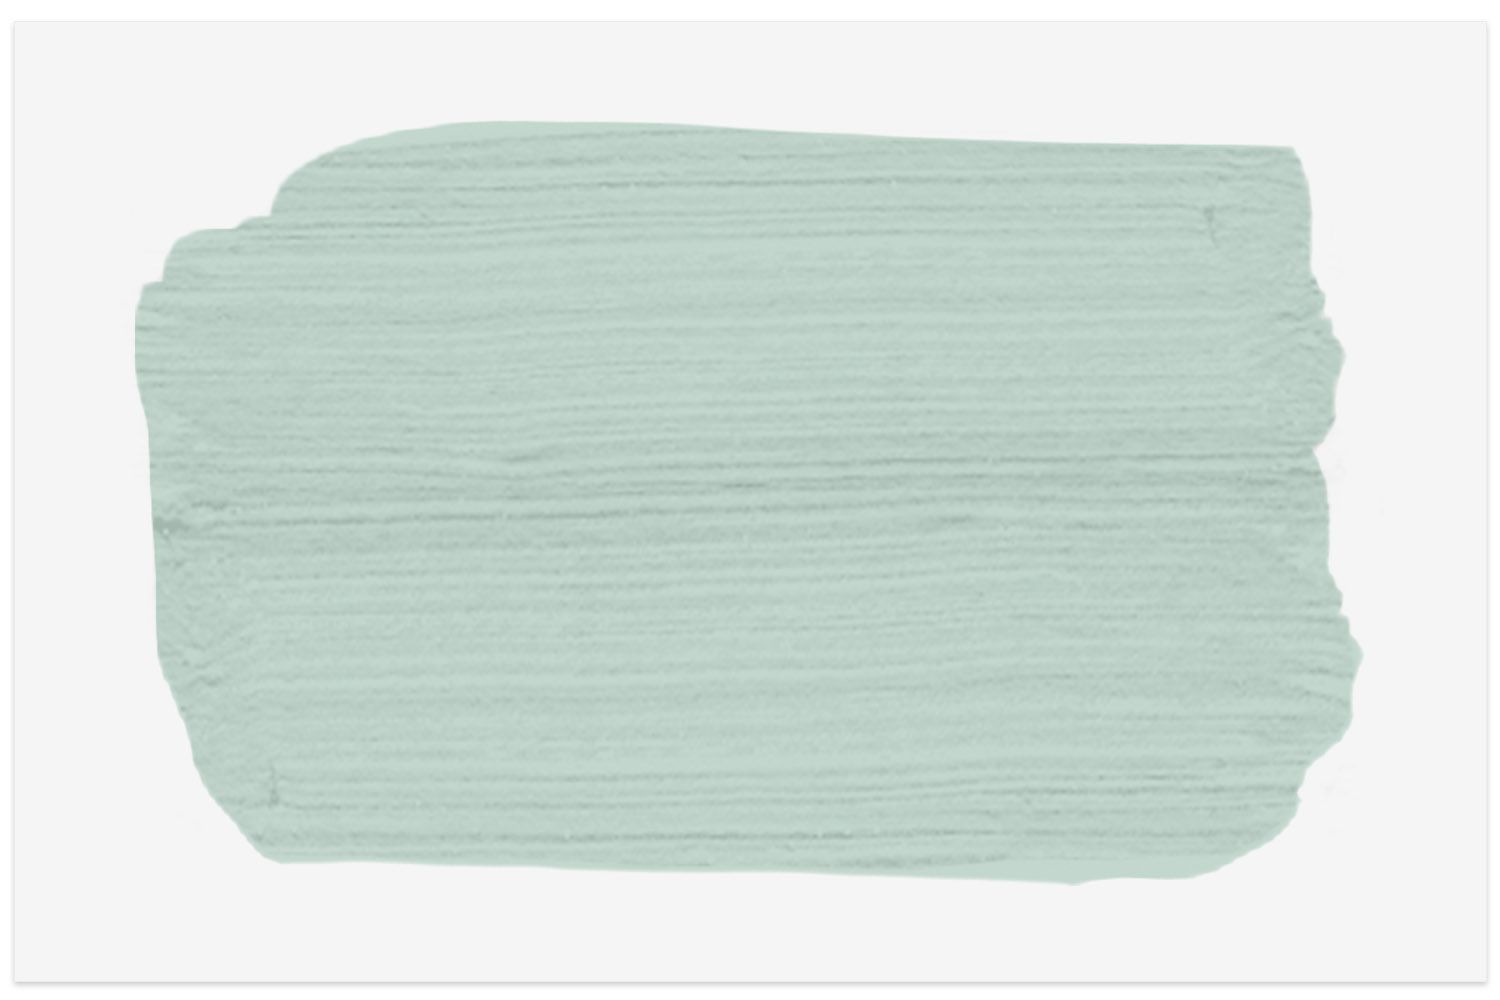 Geyser paint swatch from PPG Paints